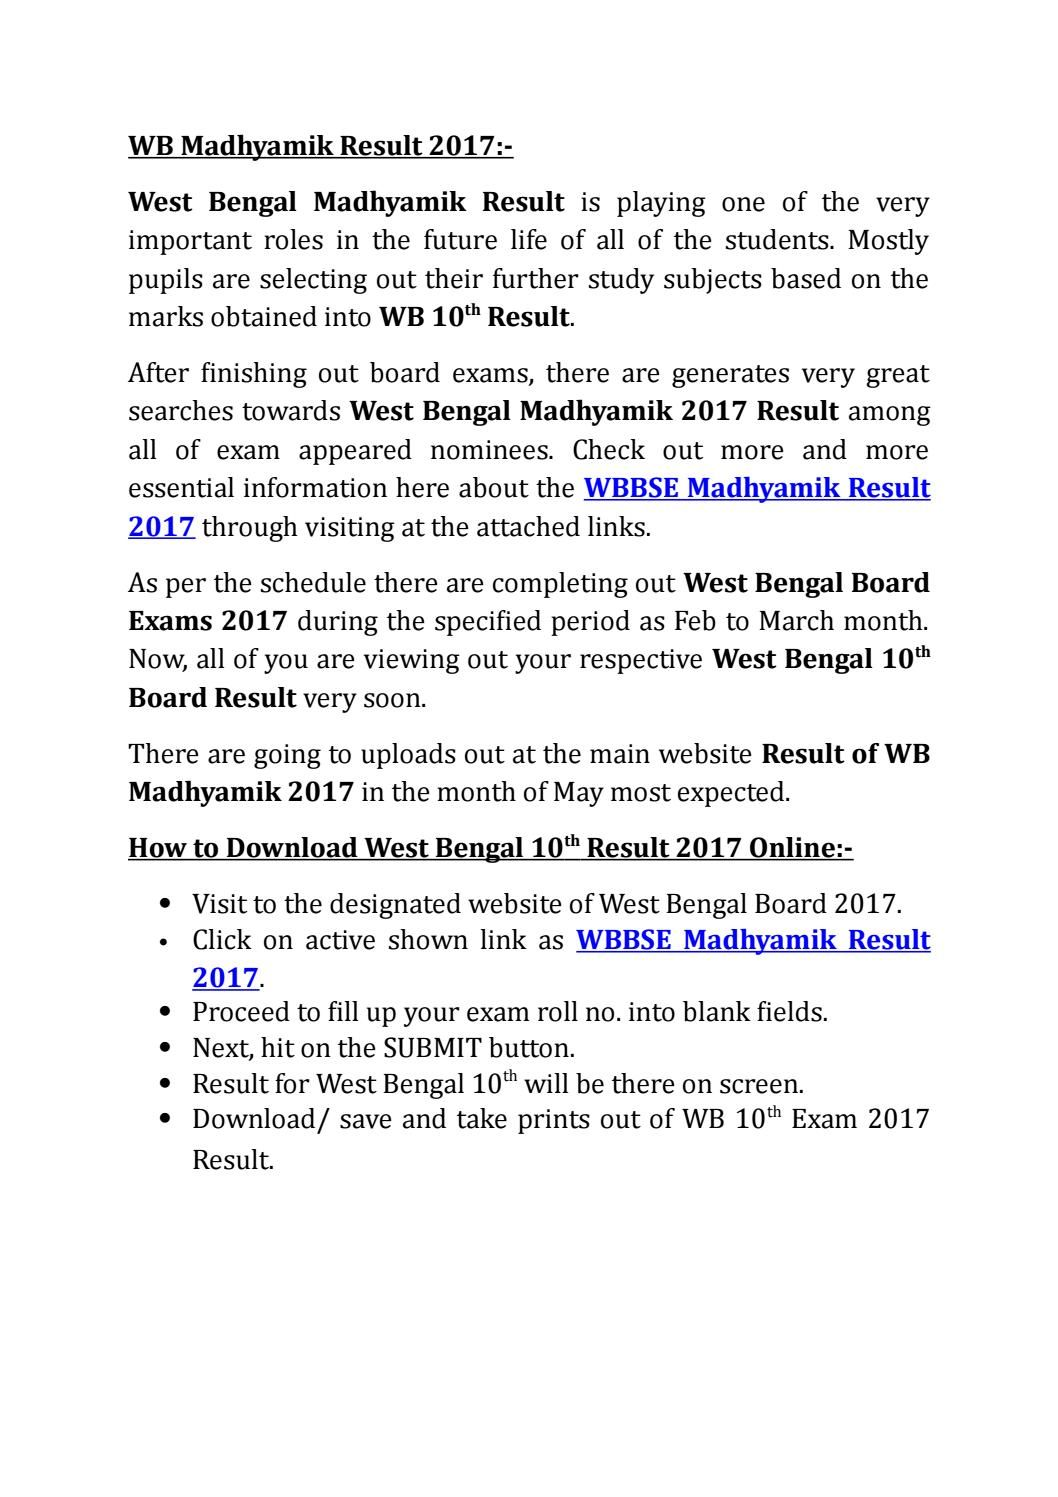 WB Madhyamik Result 2017 | GovernmentJobs | Board exam, West bengal